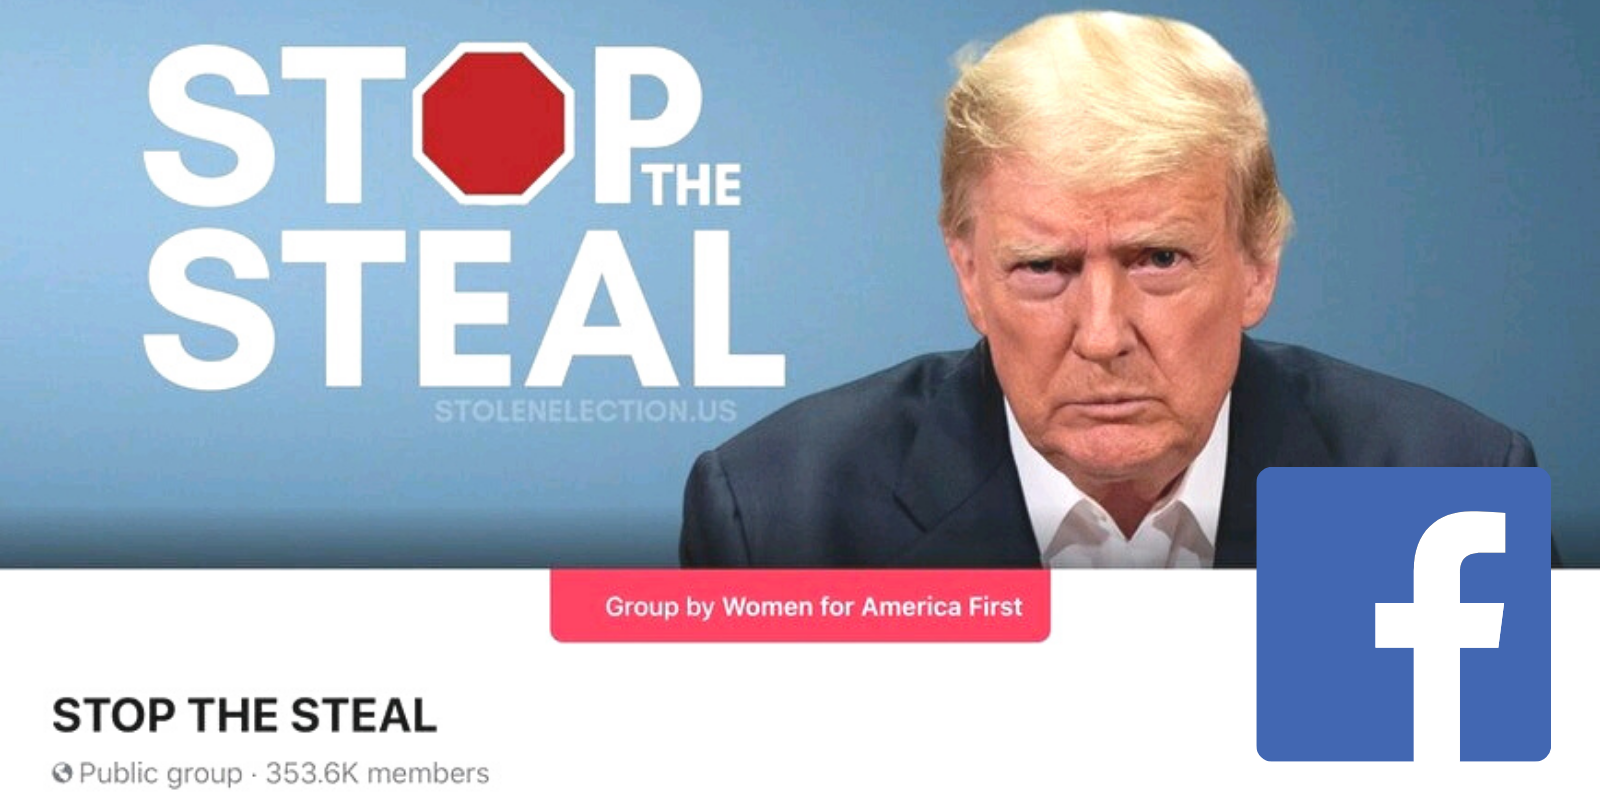 BREAKING: Facebook shuts down 'Stop the Steal' group